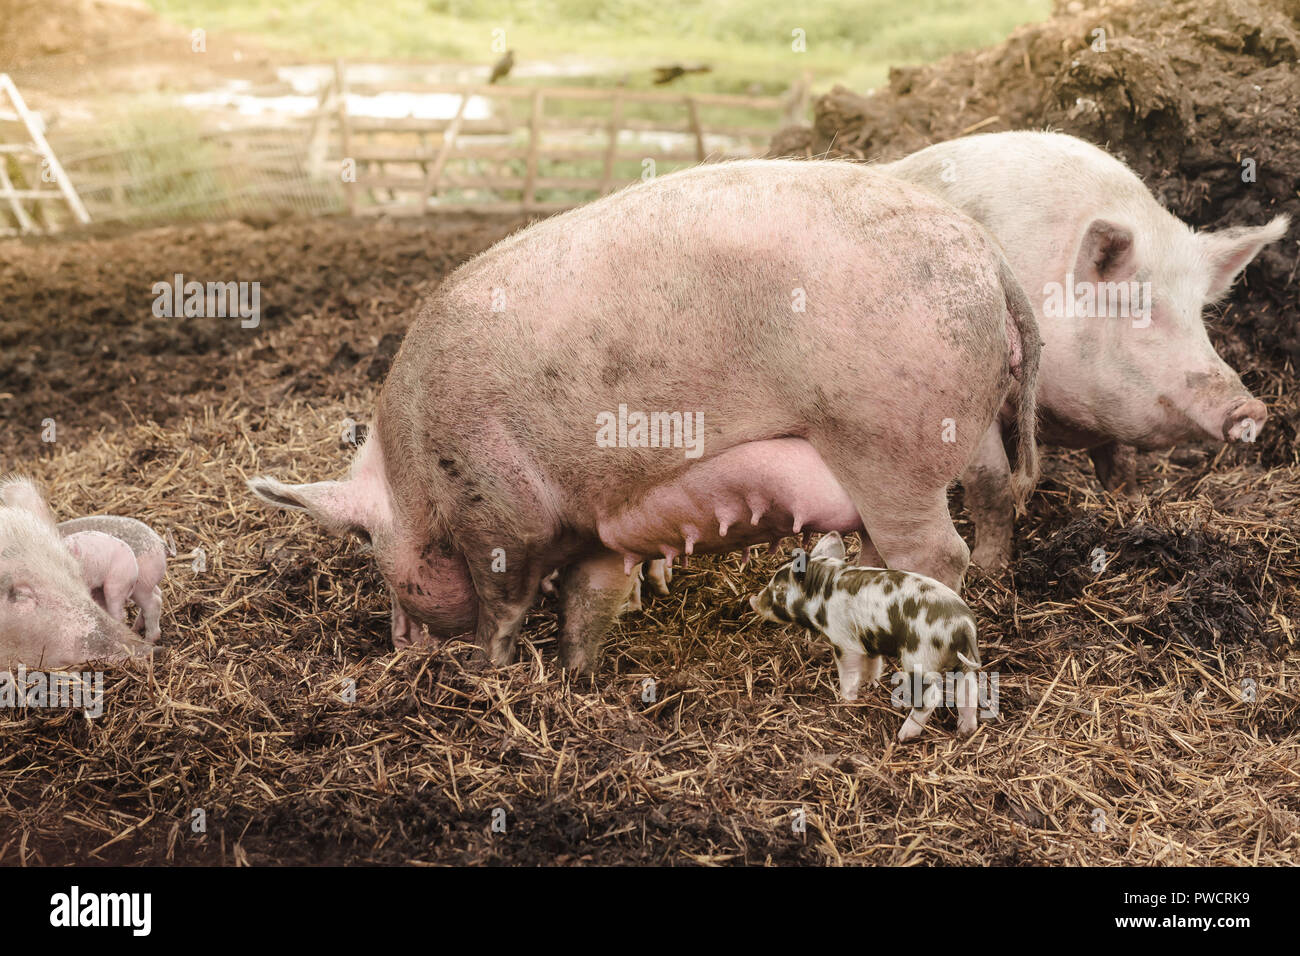 pink parent pigs are suckling a little colorful bentheimer pig at a farm background - Stock Image